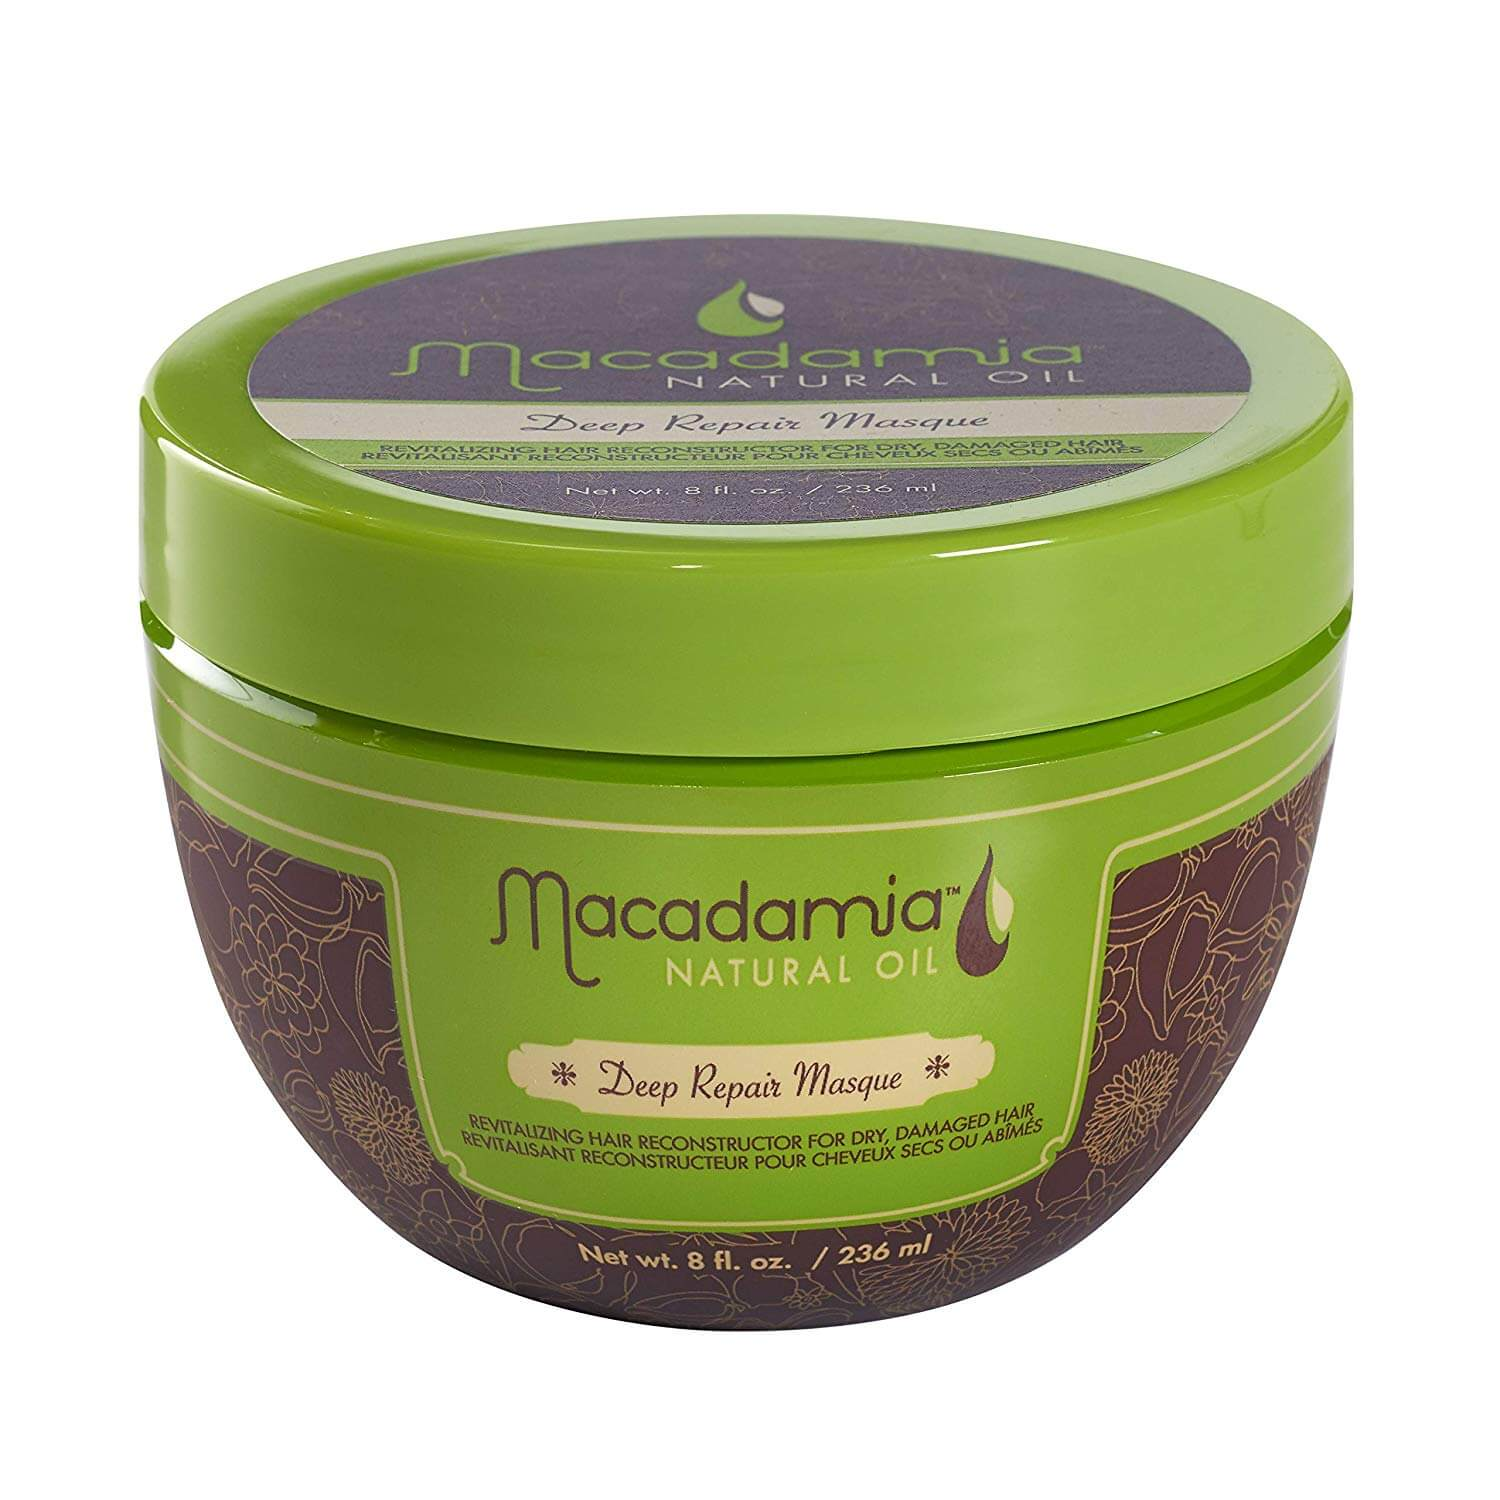 Macadamia Deep Repair Hair Mask as a product pick to make your hair grow faster